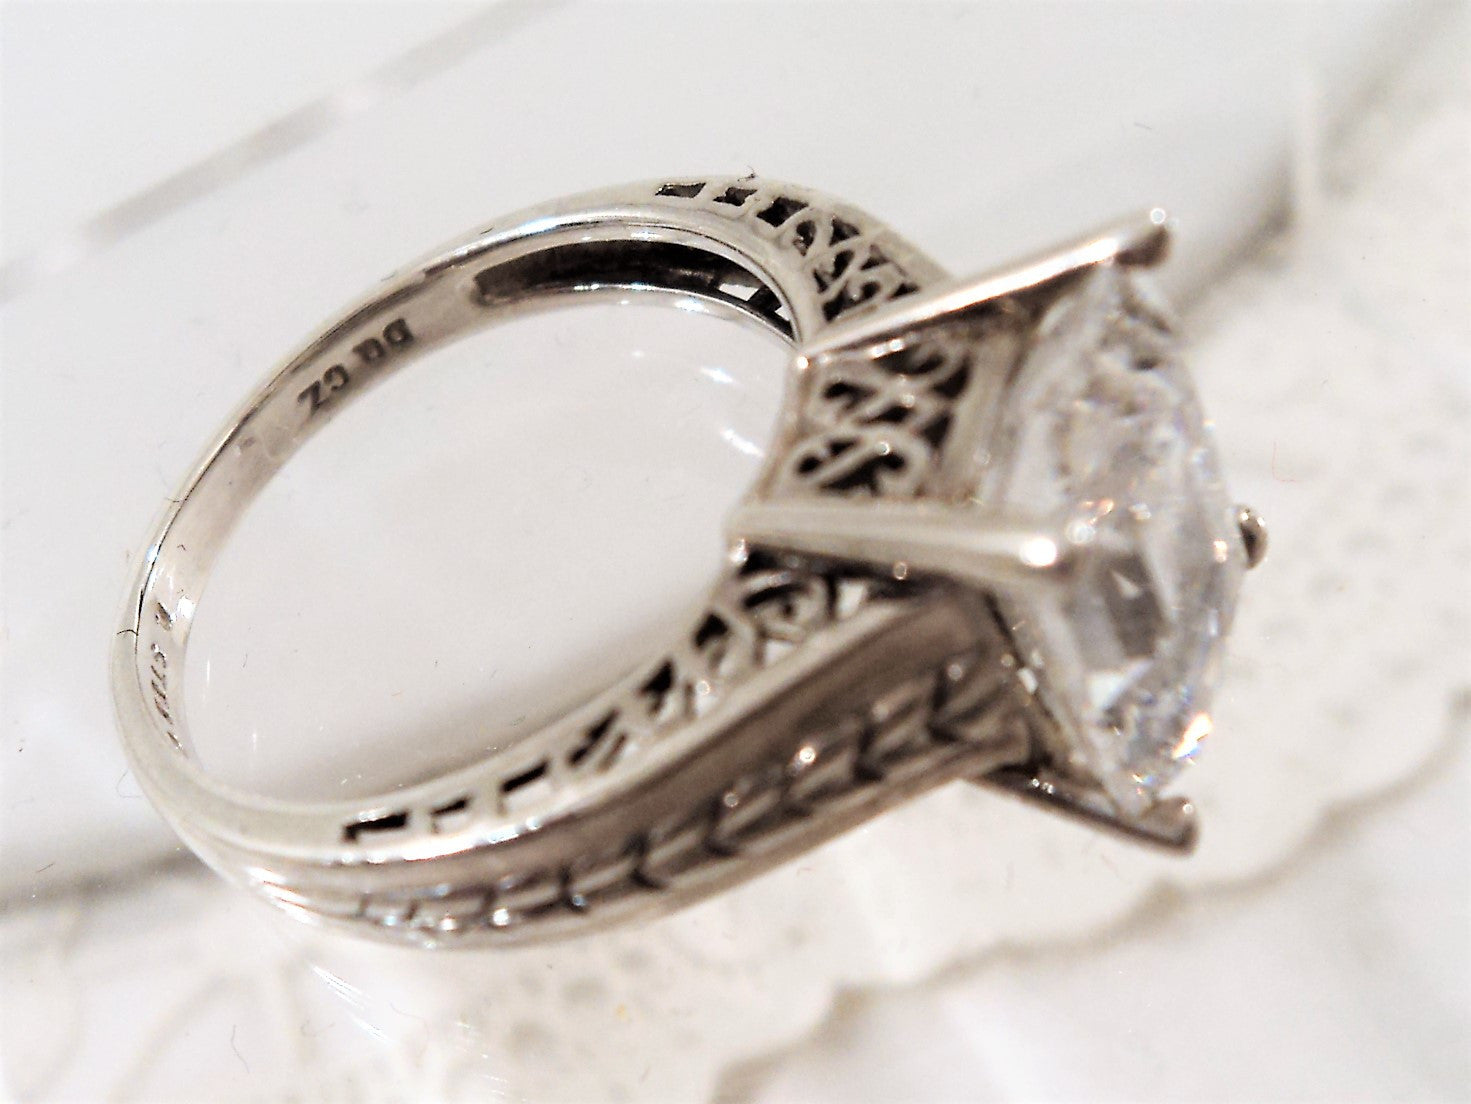 Vintage Sterling Silver and Cubic Zirconia Ring